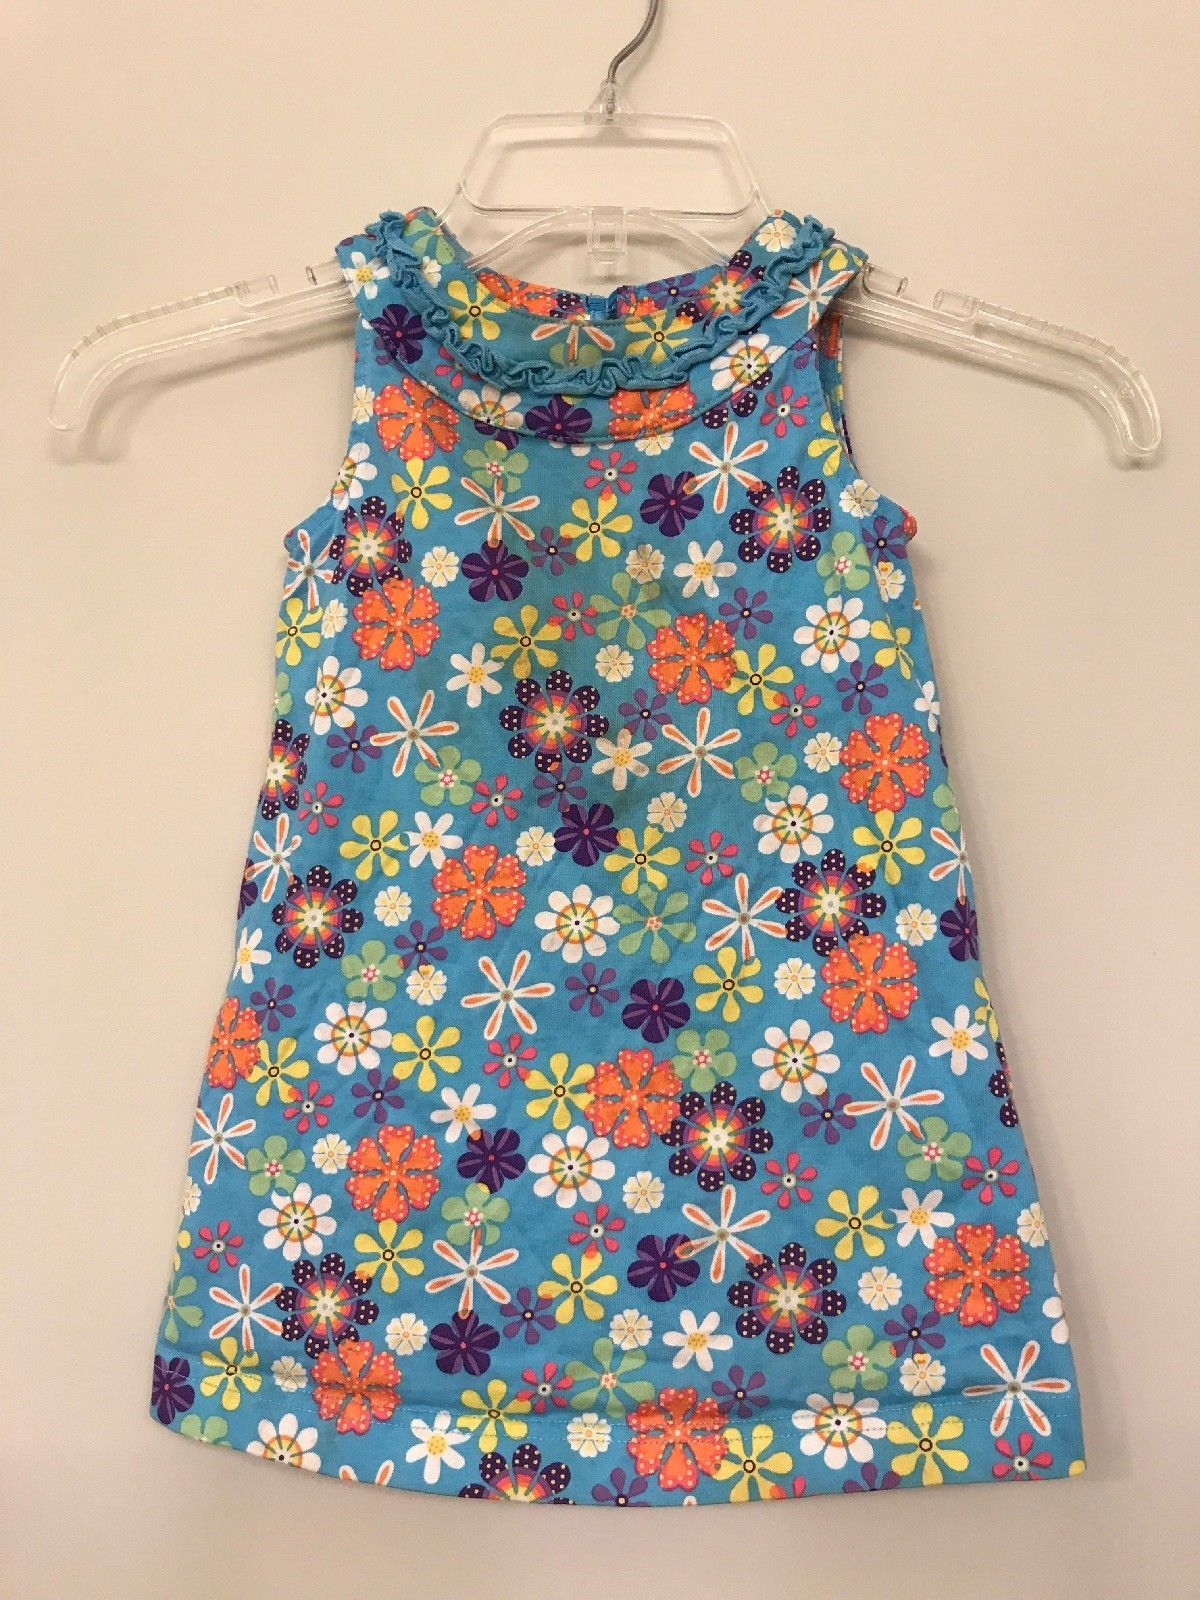 Primary image for Hanna Andersson Girls Dress Blue Floral Print Jumper Size 80 (18-24 Months)